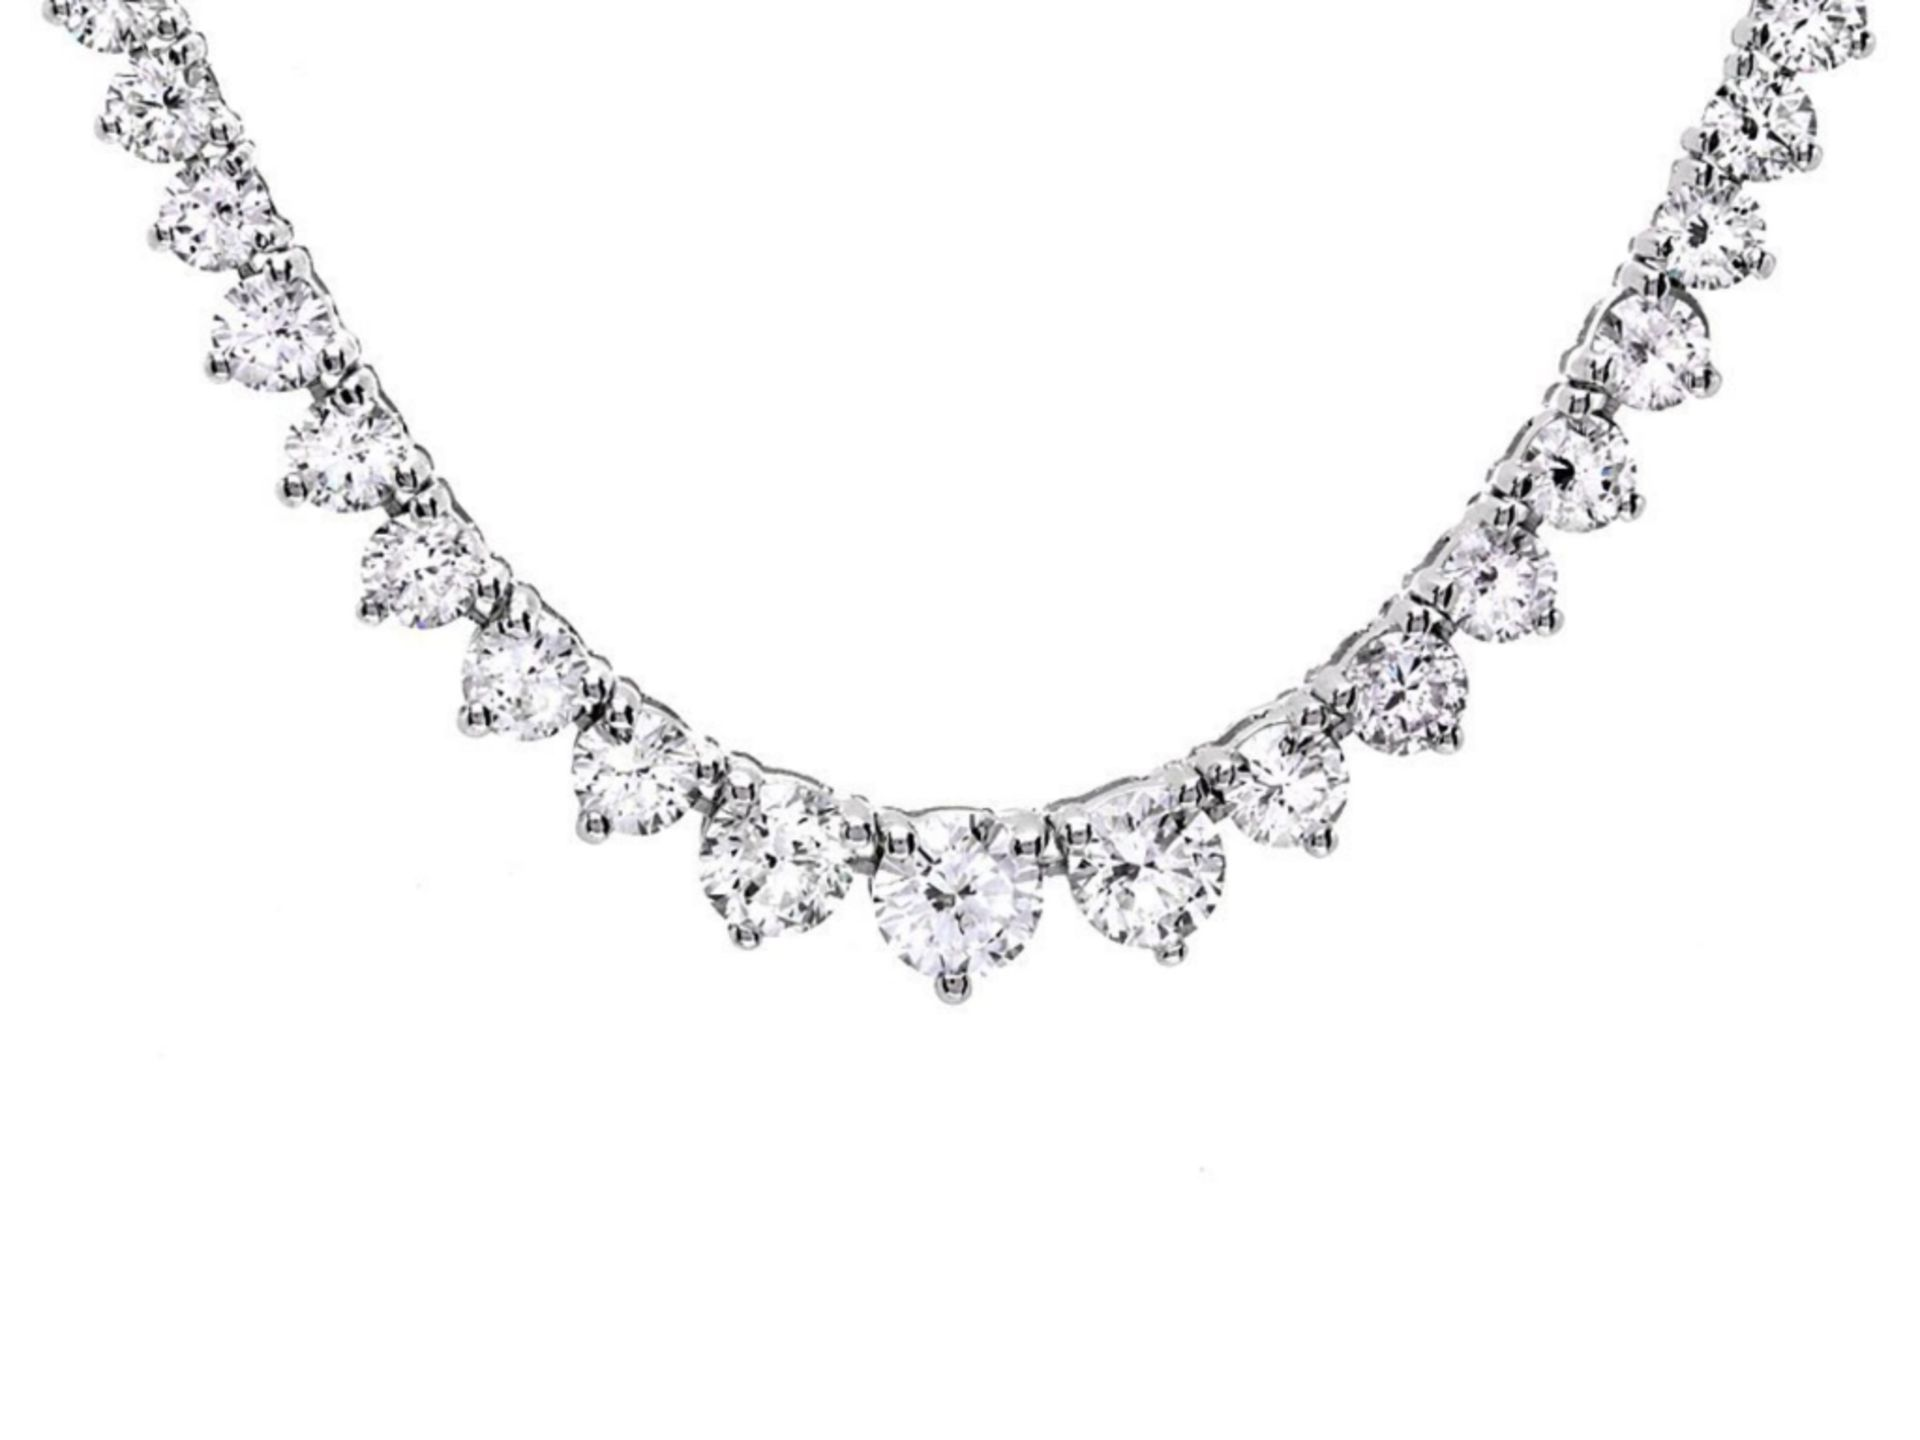 18k White Gold 7.80ct Diamond Necklace - Image 4 of 4